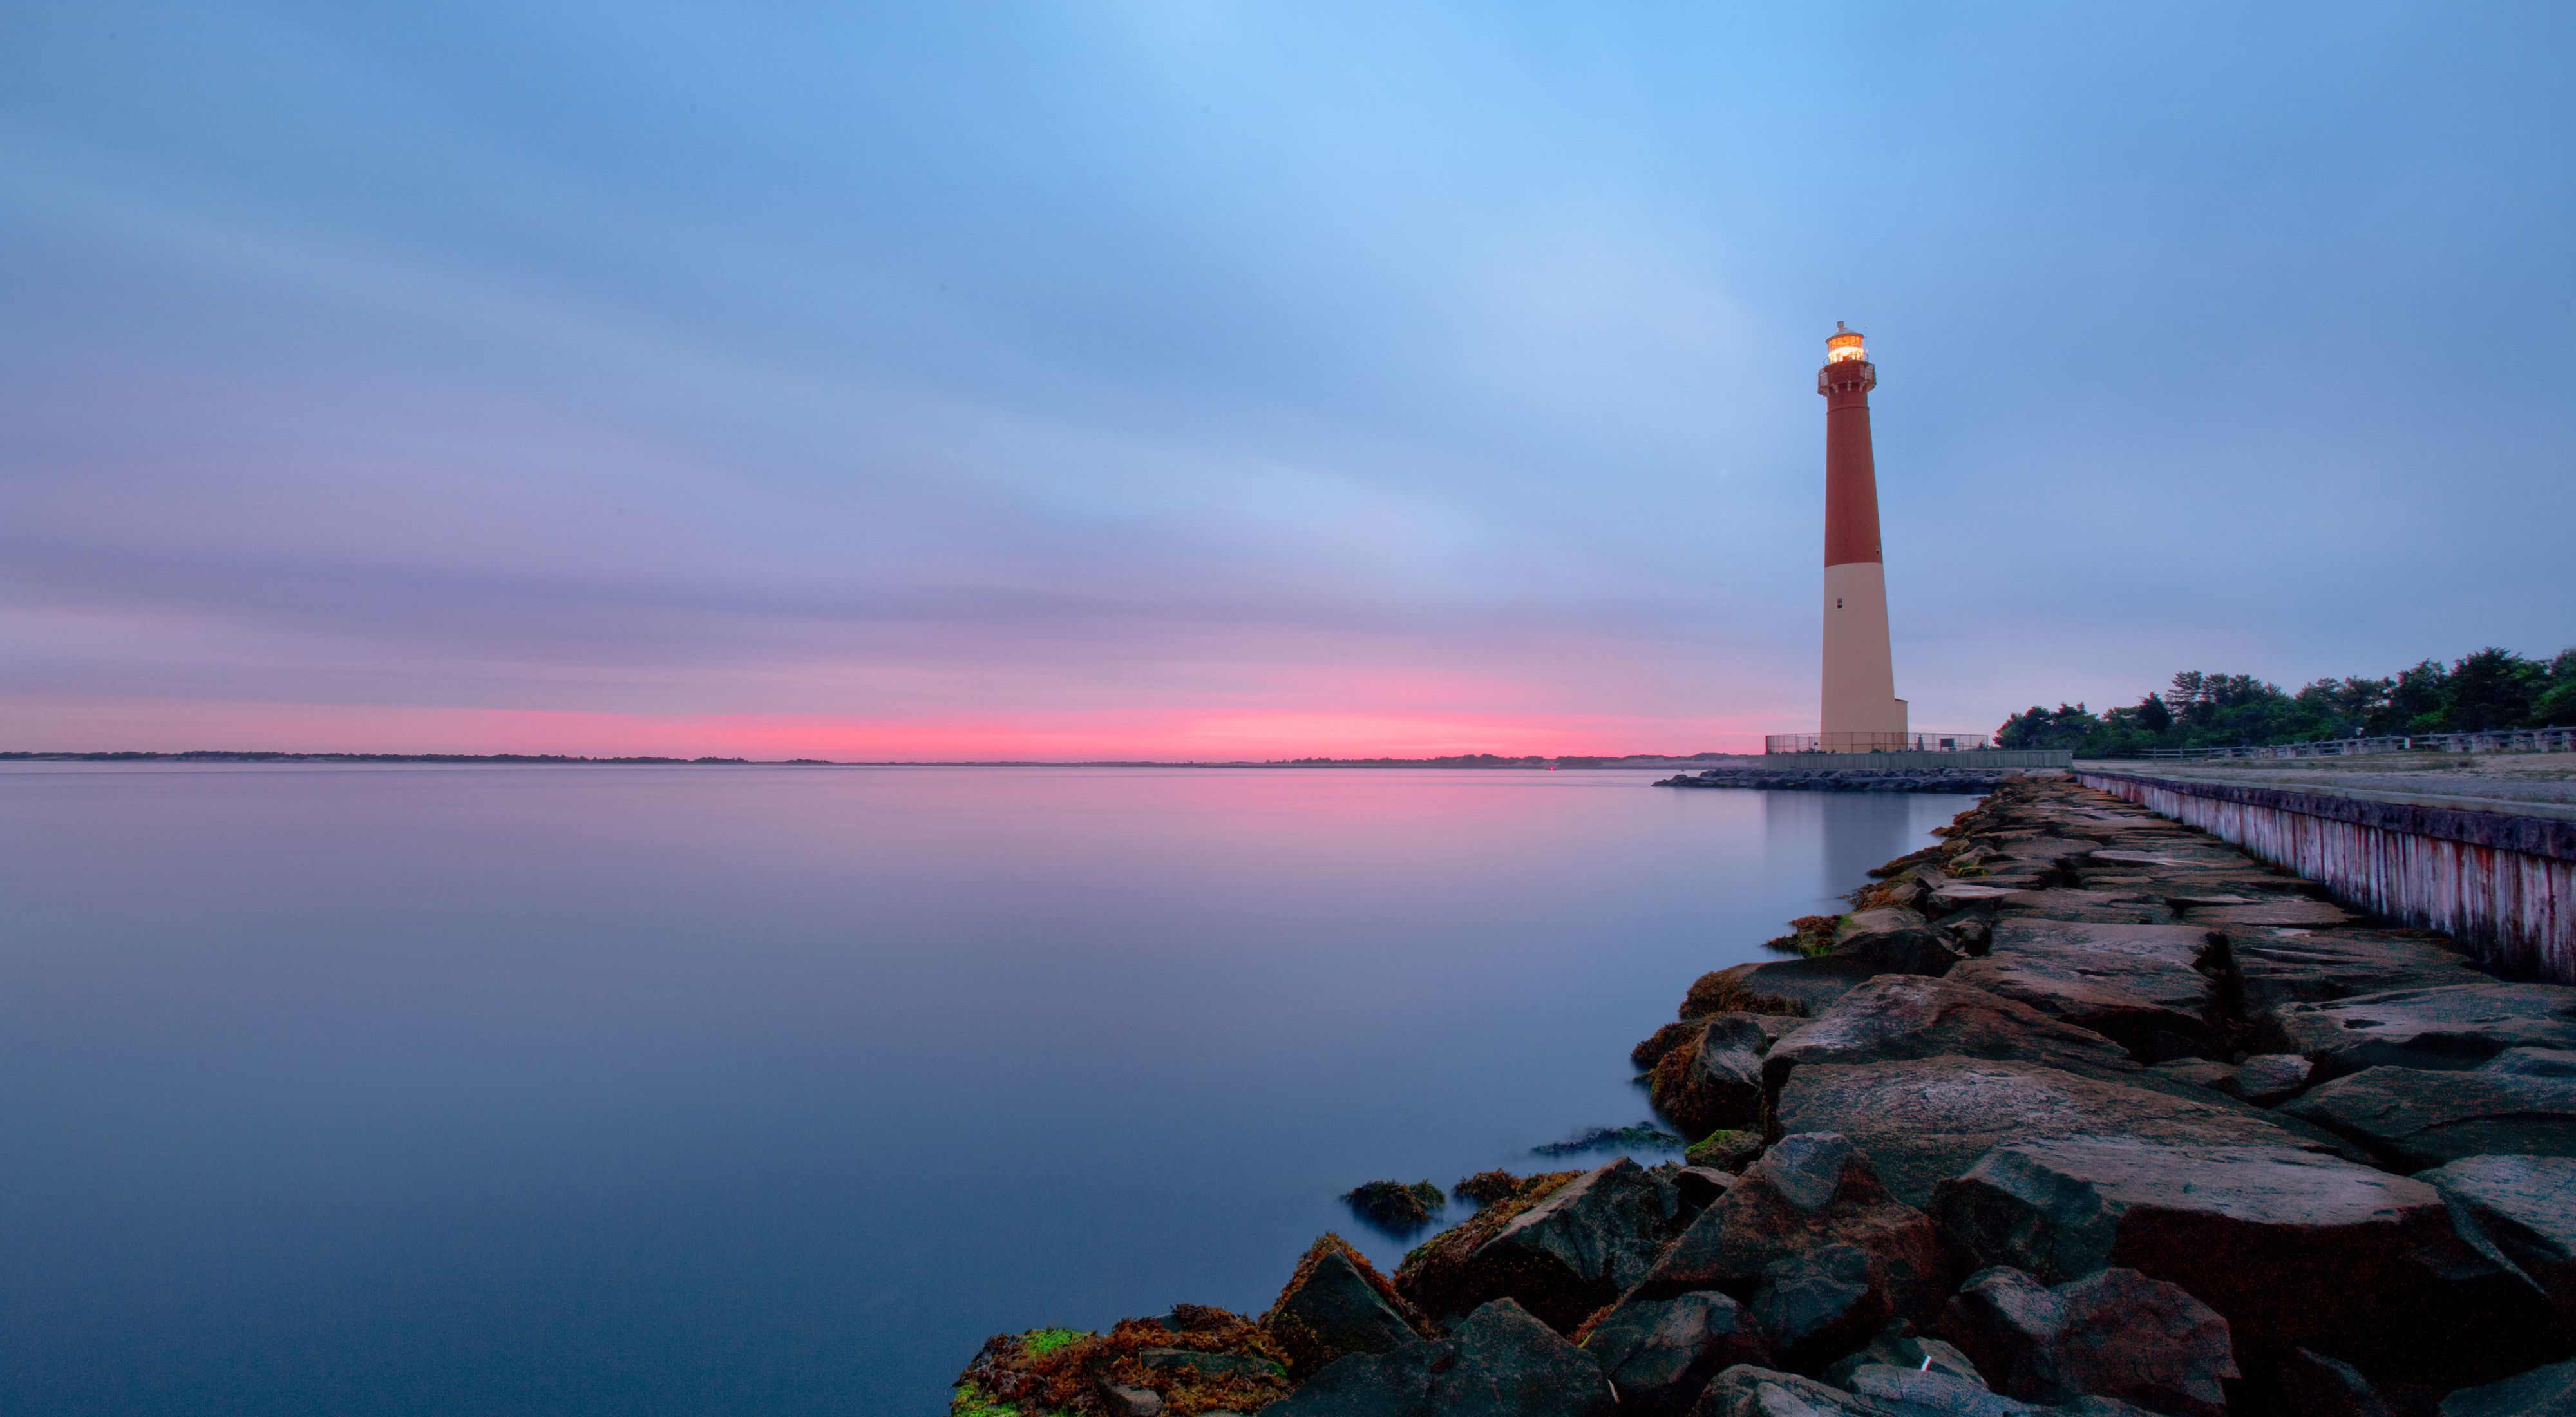 Sun setting over a lighthouse, with pink and blue sky.